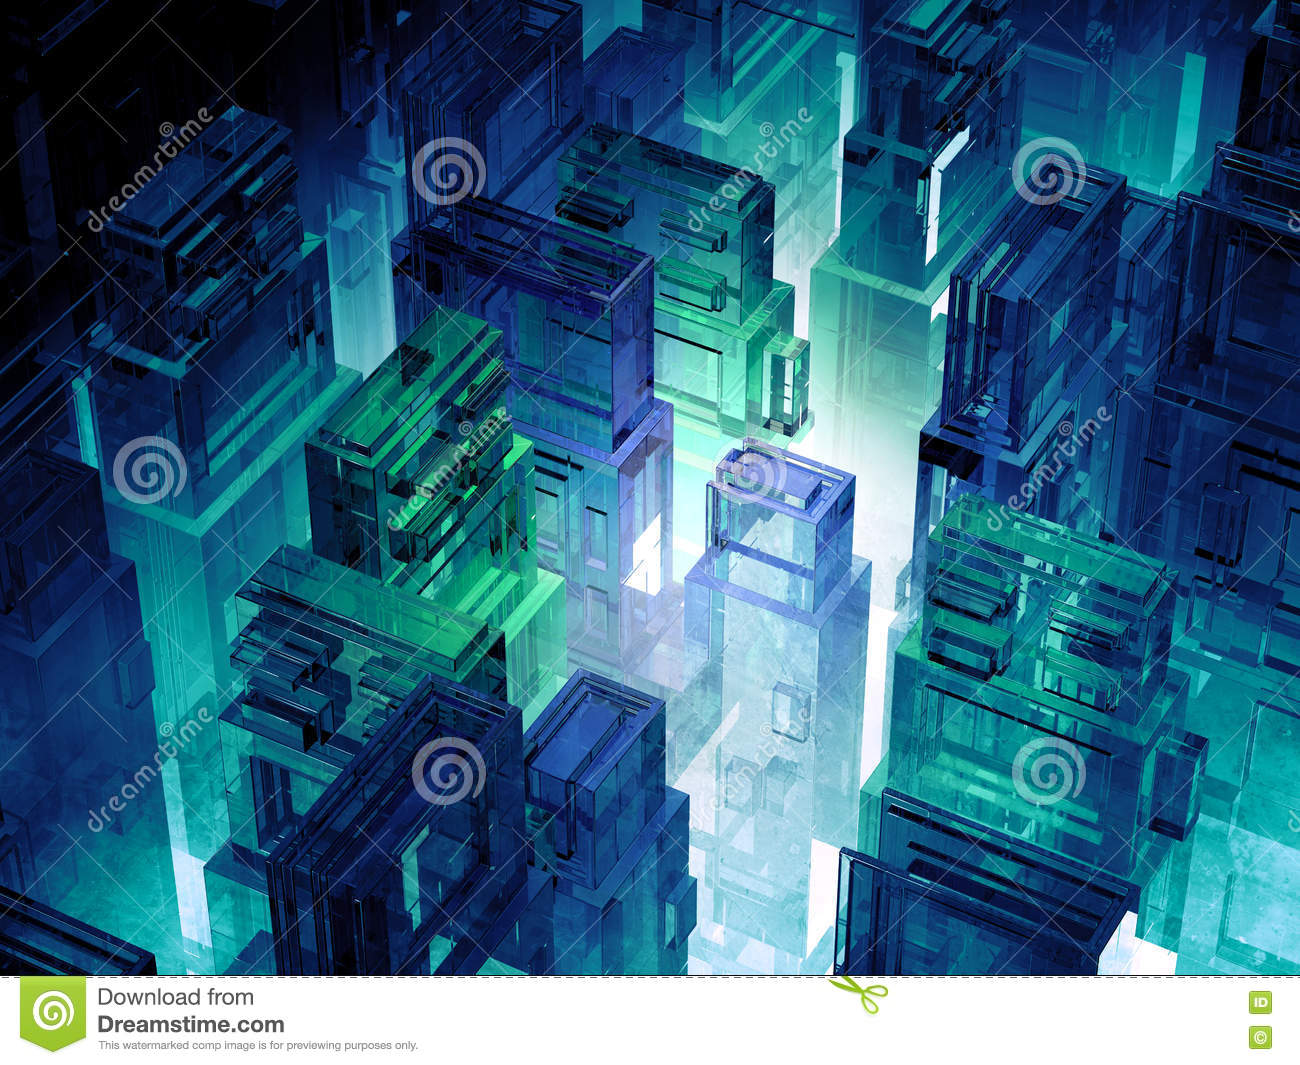 Futuristic micro chips city. Computer science information technology background. Sci fi megalopolis. 3d illustration